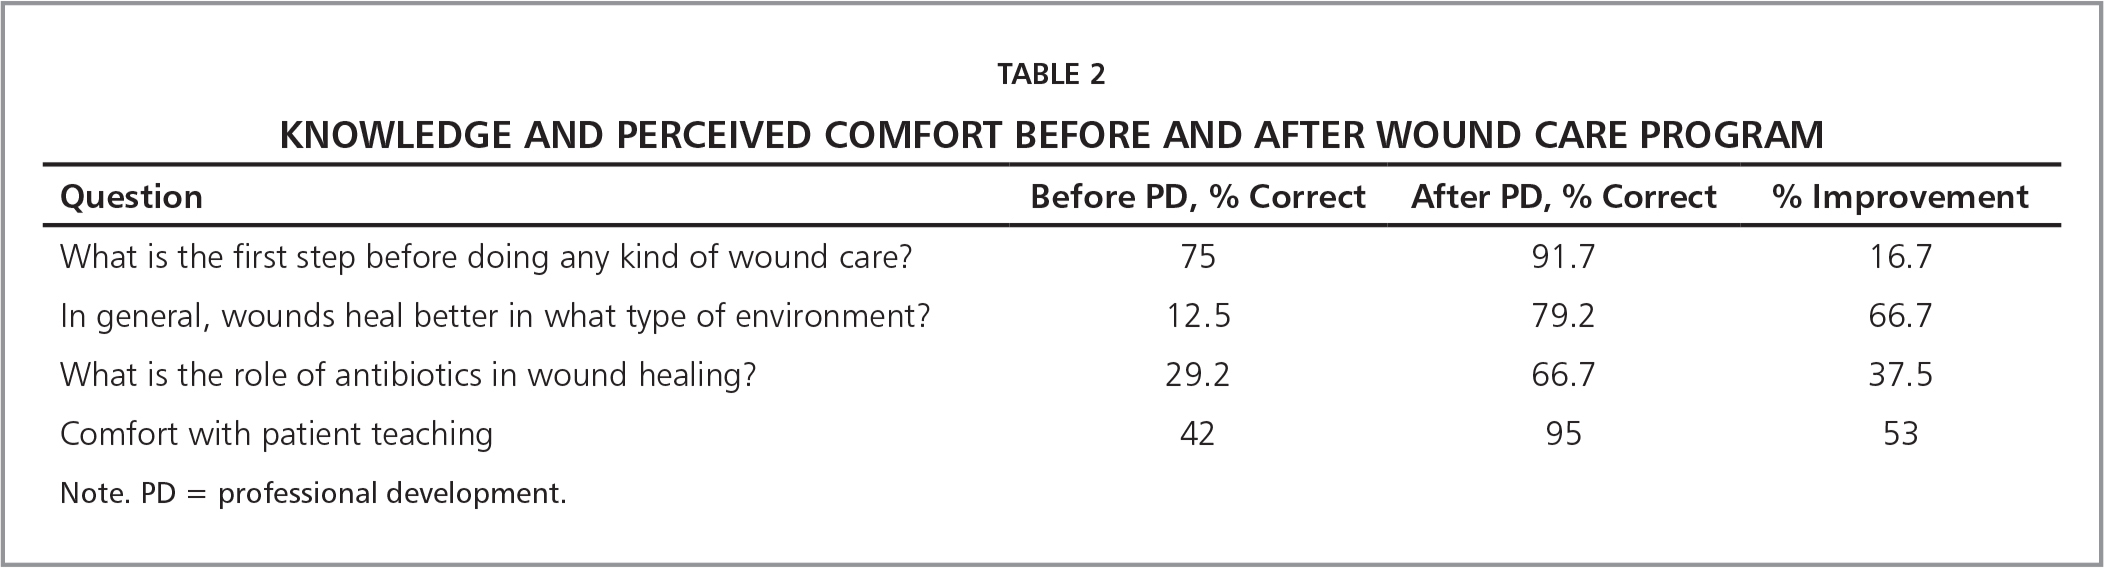 Knowledge and Perceived Comfort Before and After Wound Care Program